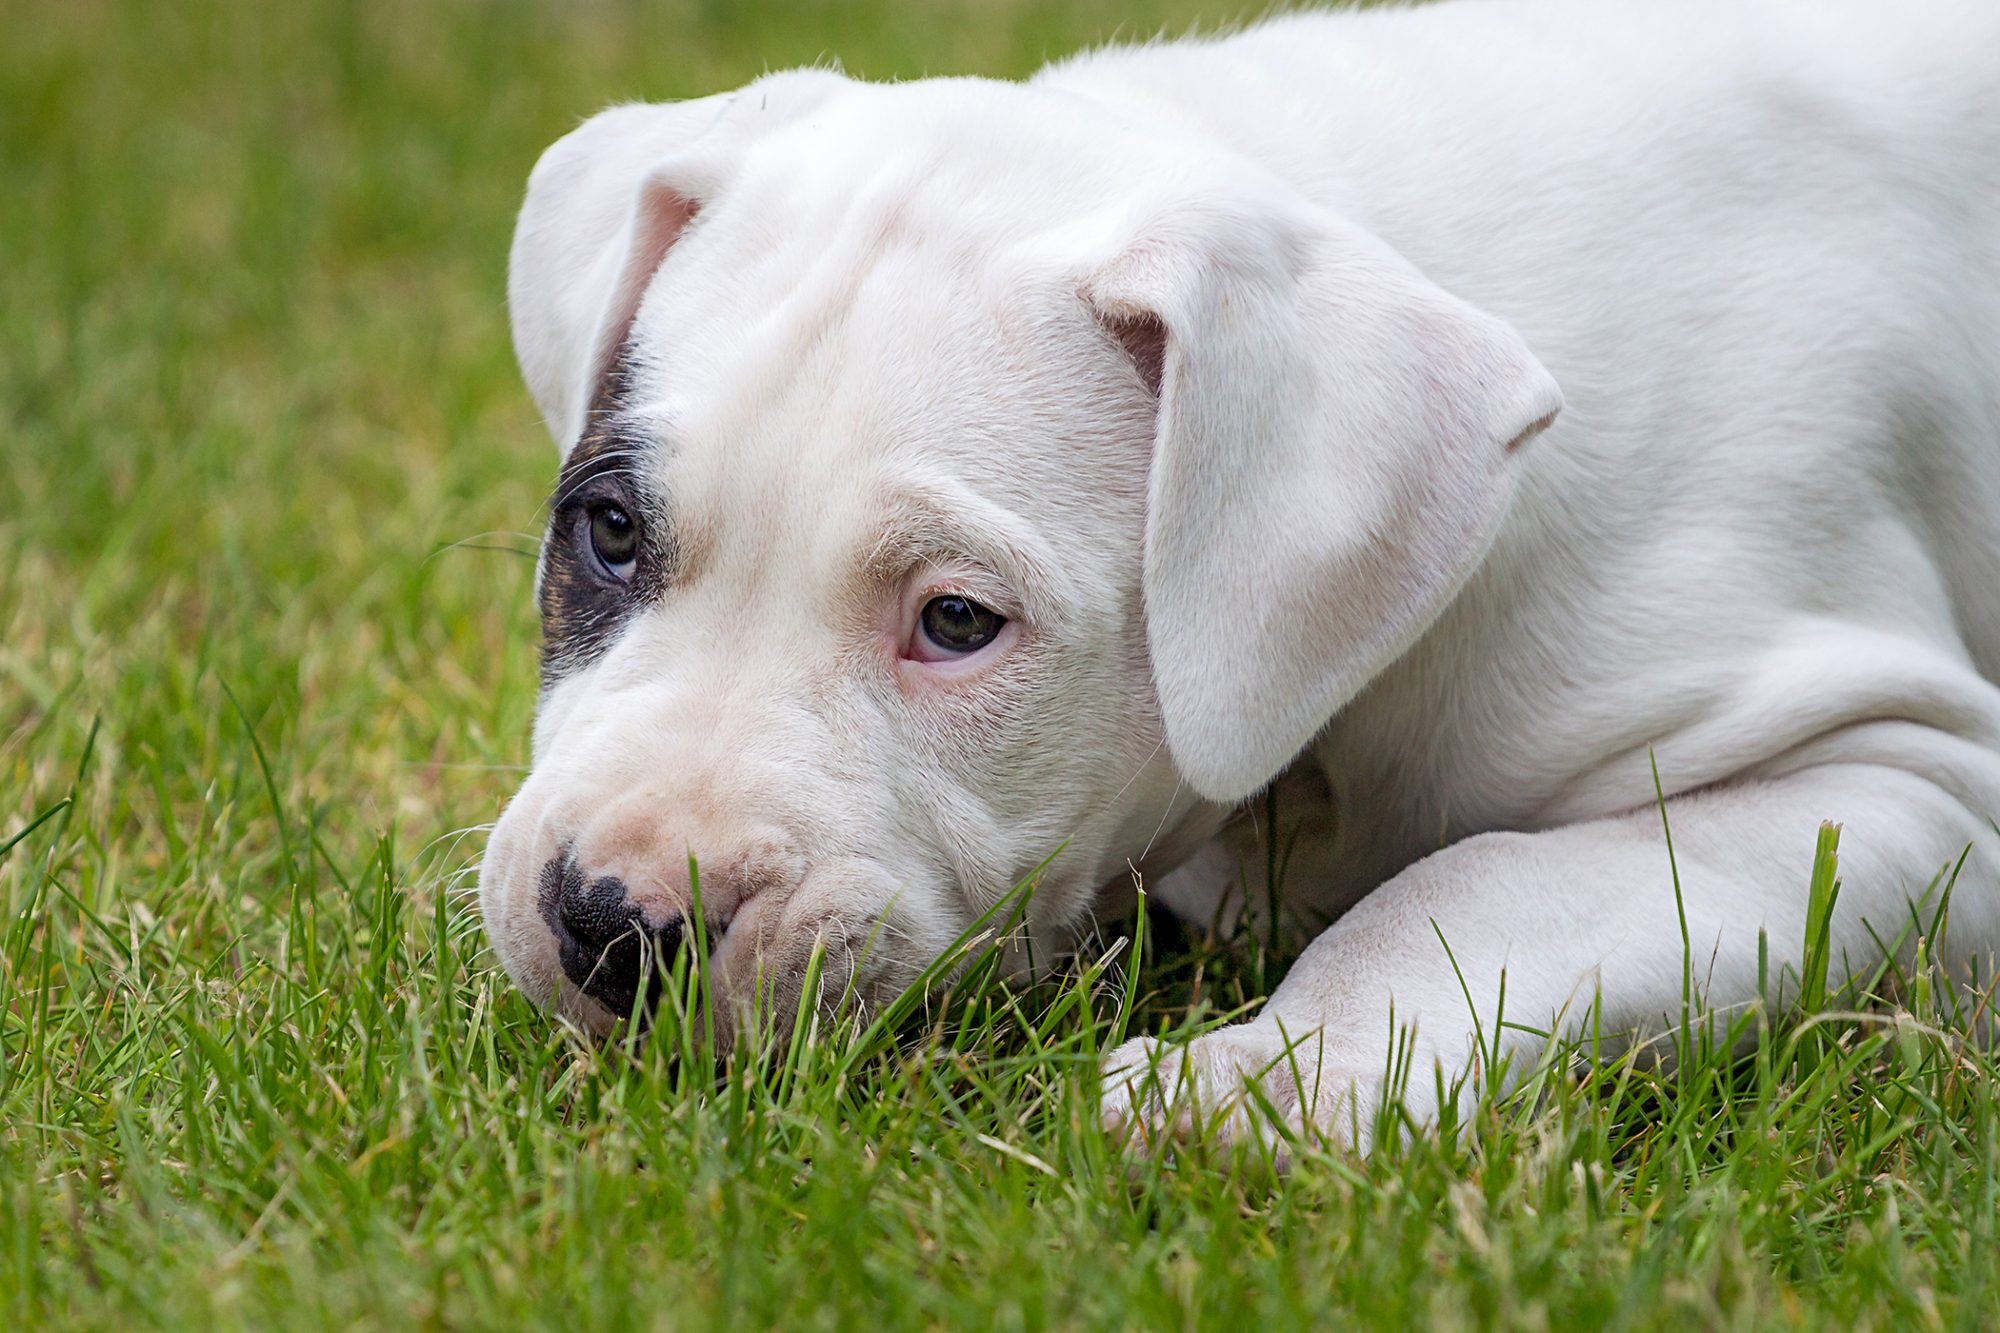 dogo argentino puppy lying in the grass